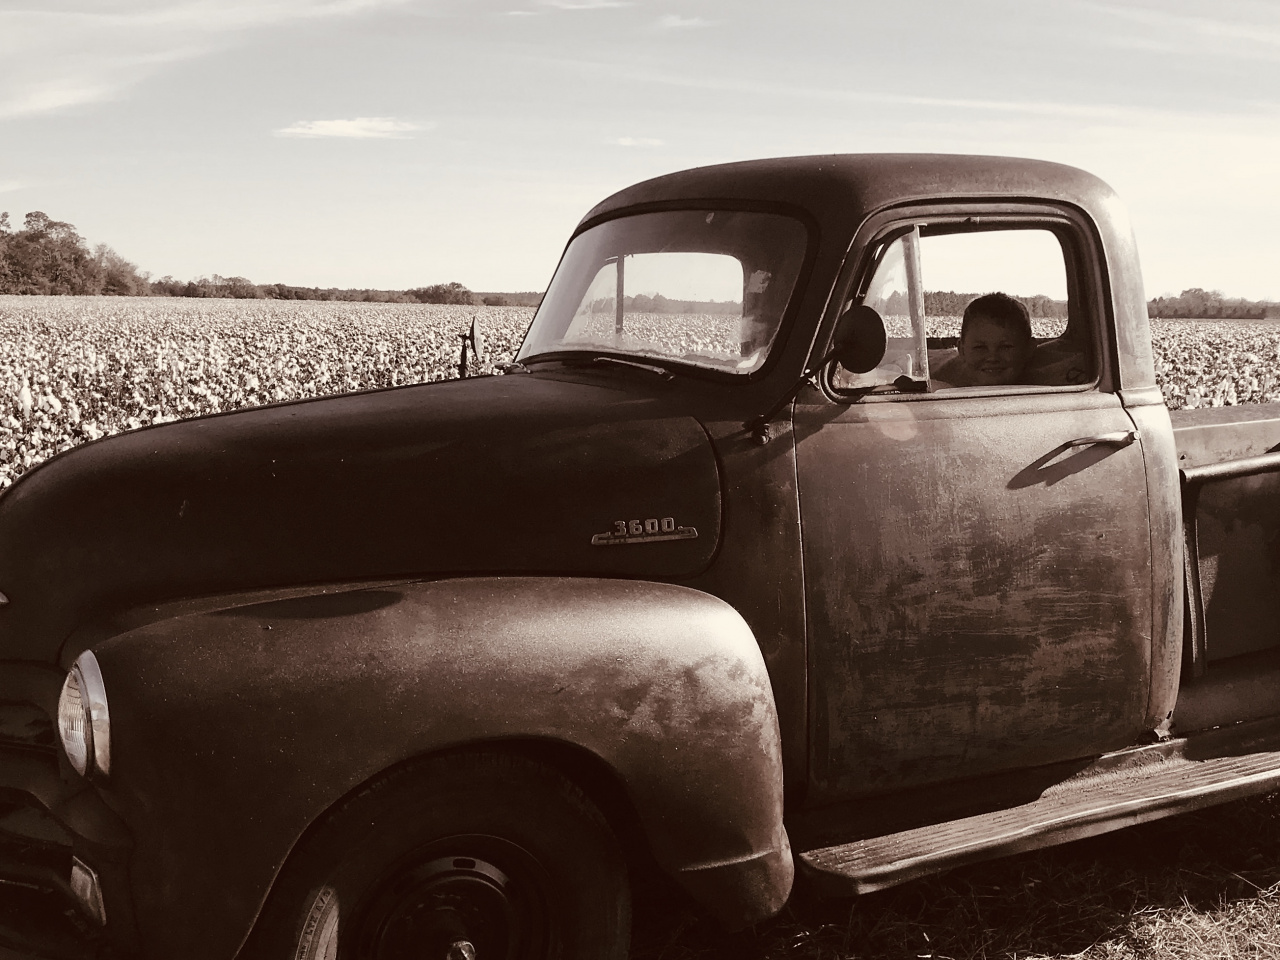 Take your fall  pics by the cotton and old truck-7dfa035e-49c0-4e6f-8d84-d6df1d42115c-jpg